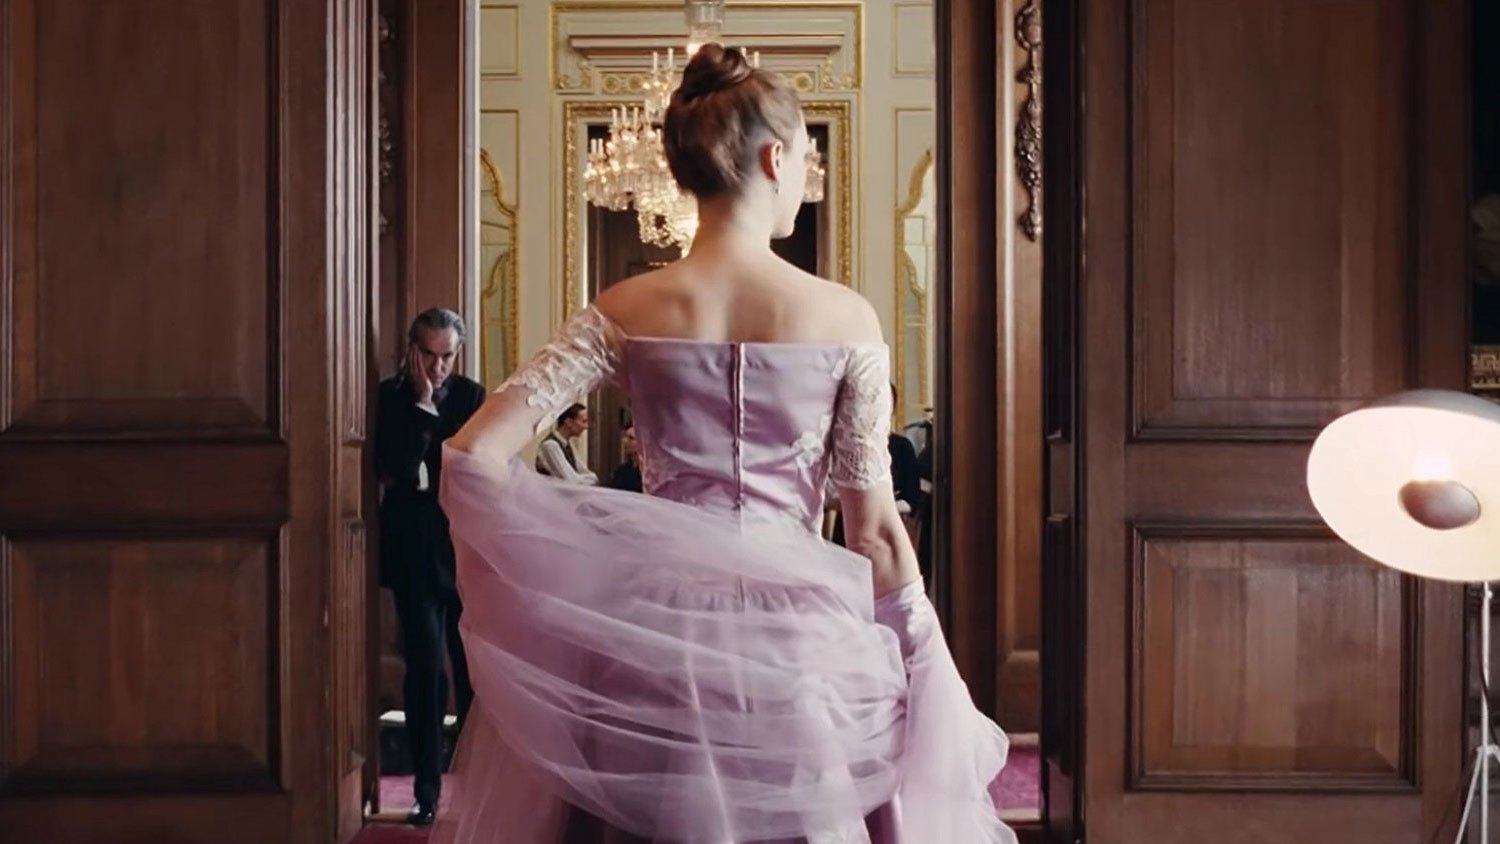 Phantom Thread Review – A Fitted Swansong For Day-Lewis? - OC Movie Reviews - Movie Reviews, Movie News, Documentary Reviews, Short Films, Short Film Reviews, Trailers, Movie Trailers, Interviews, film reviews, film news, hollywood, indie films, documentaries